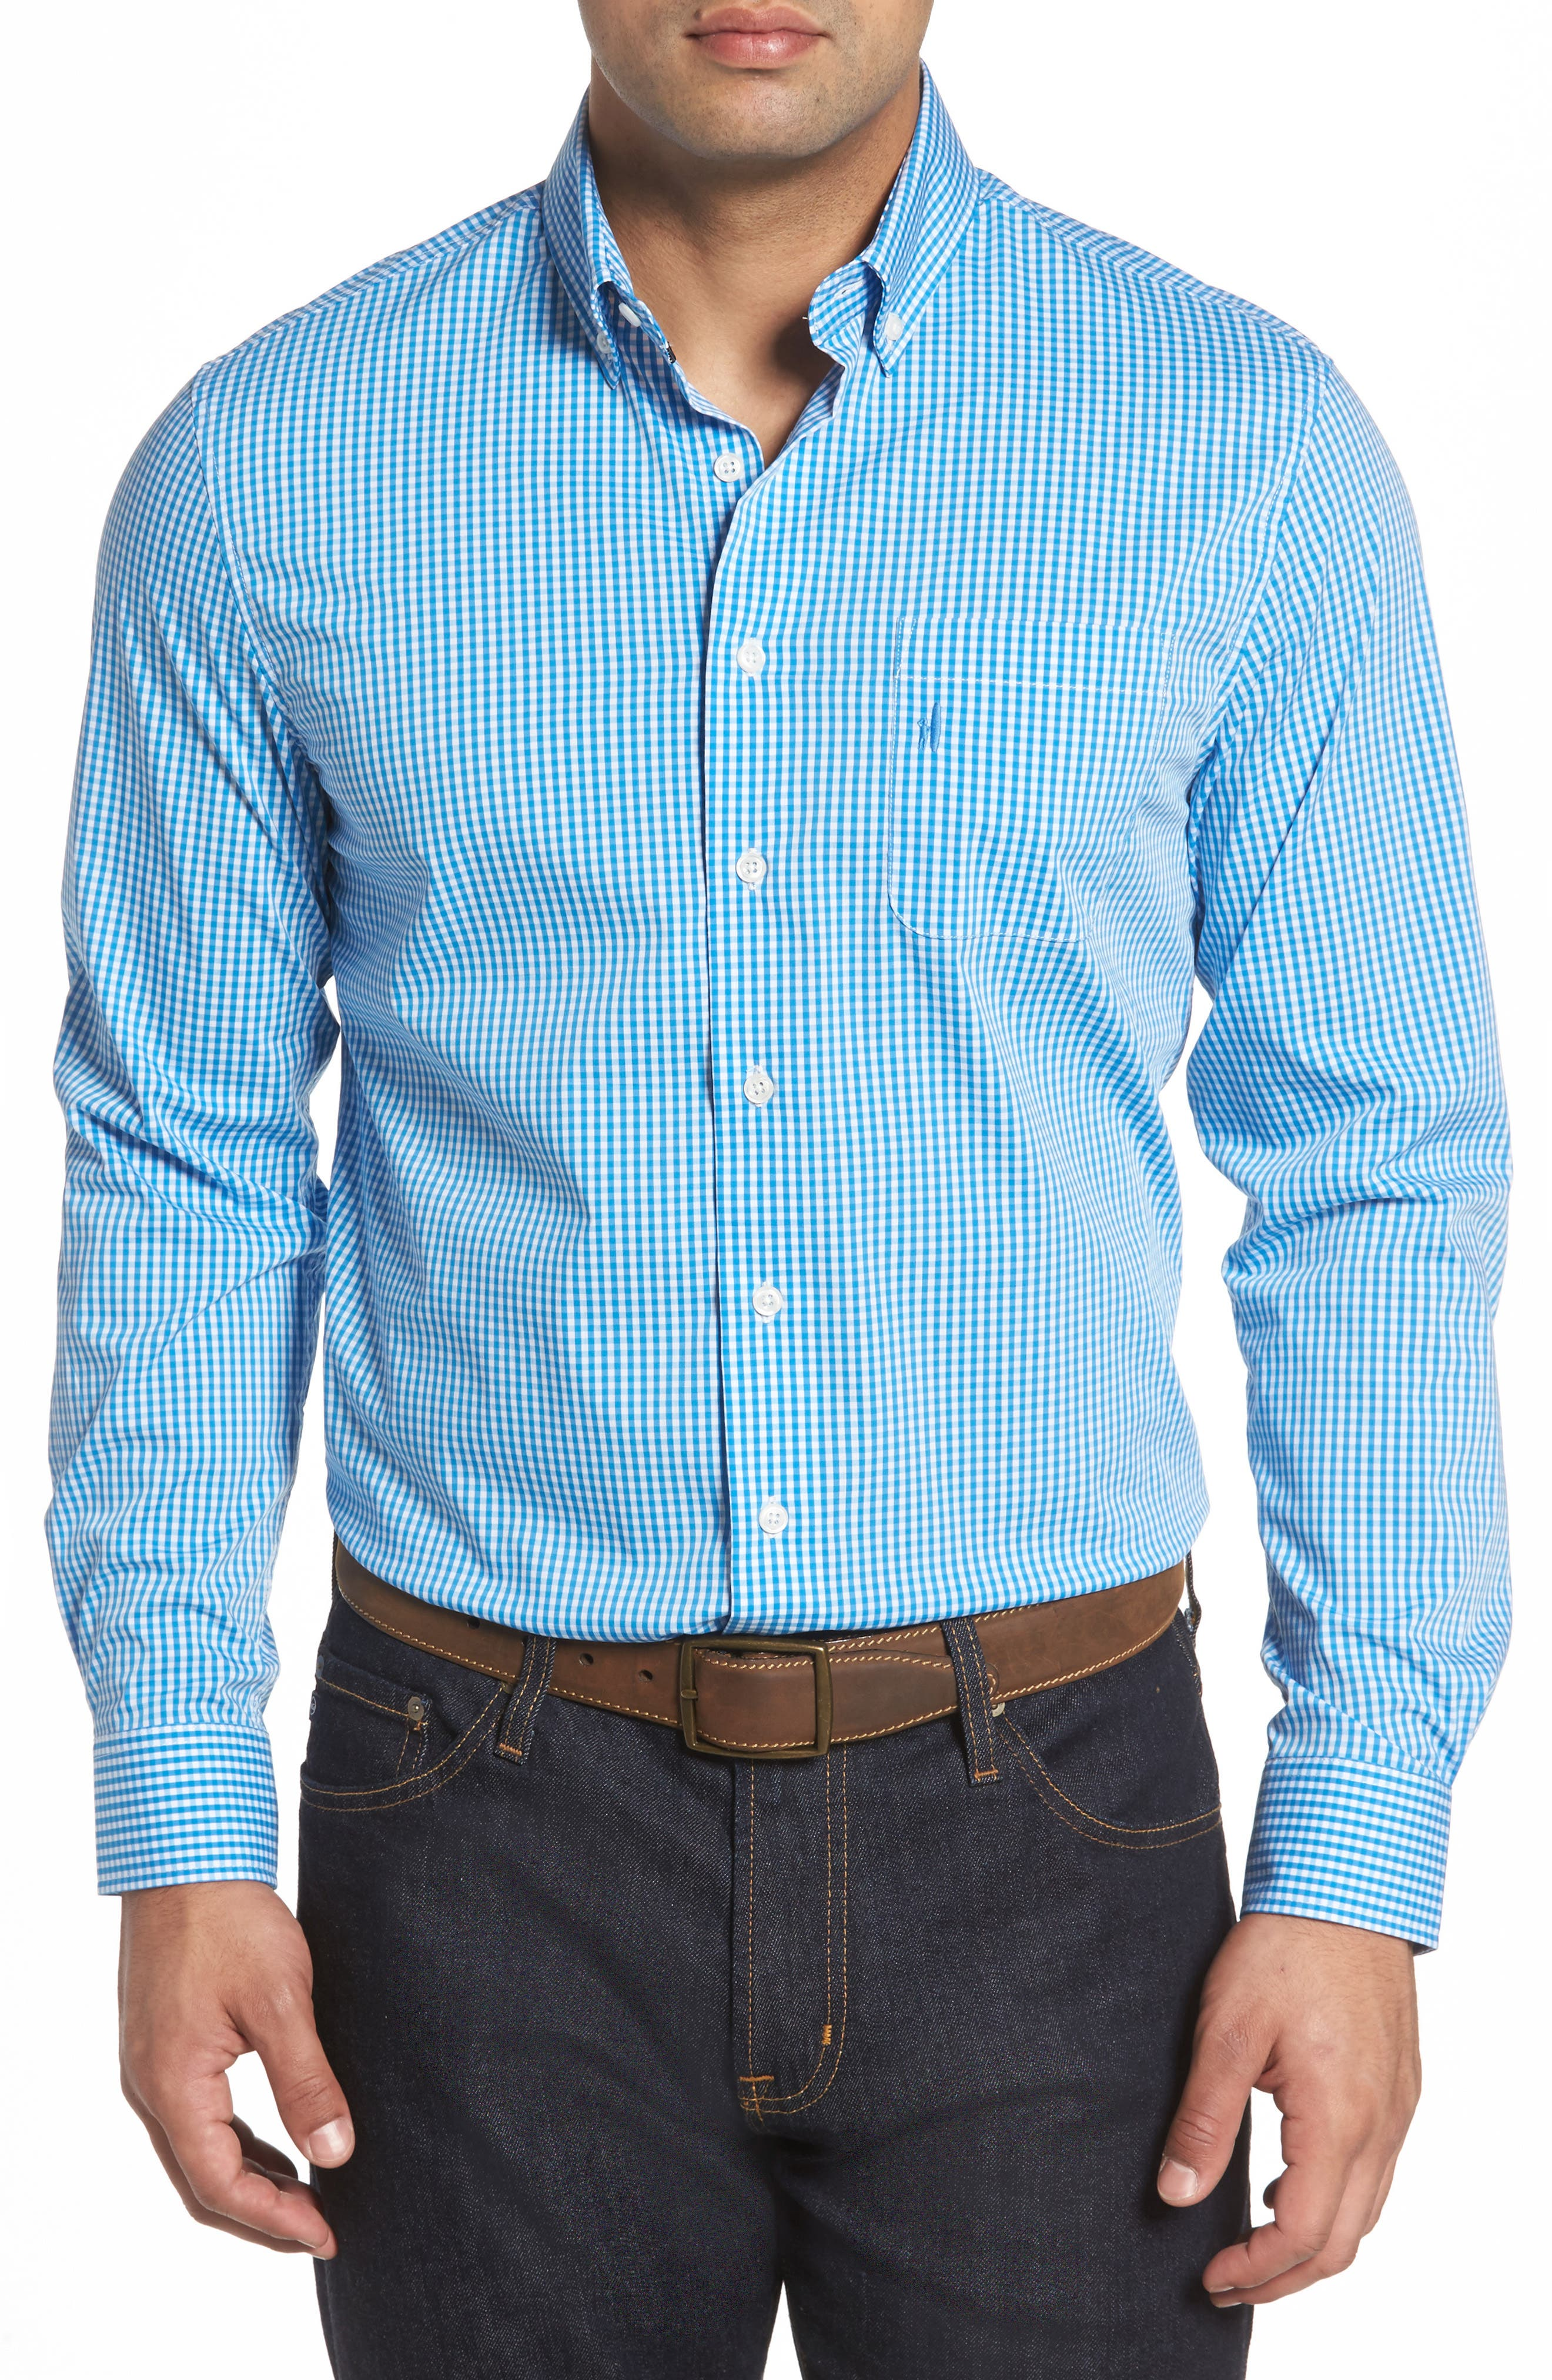 Augusta Classic Fit Check Sport Shirt,                             Main thumbnail 1, color,                             Oasis